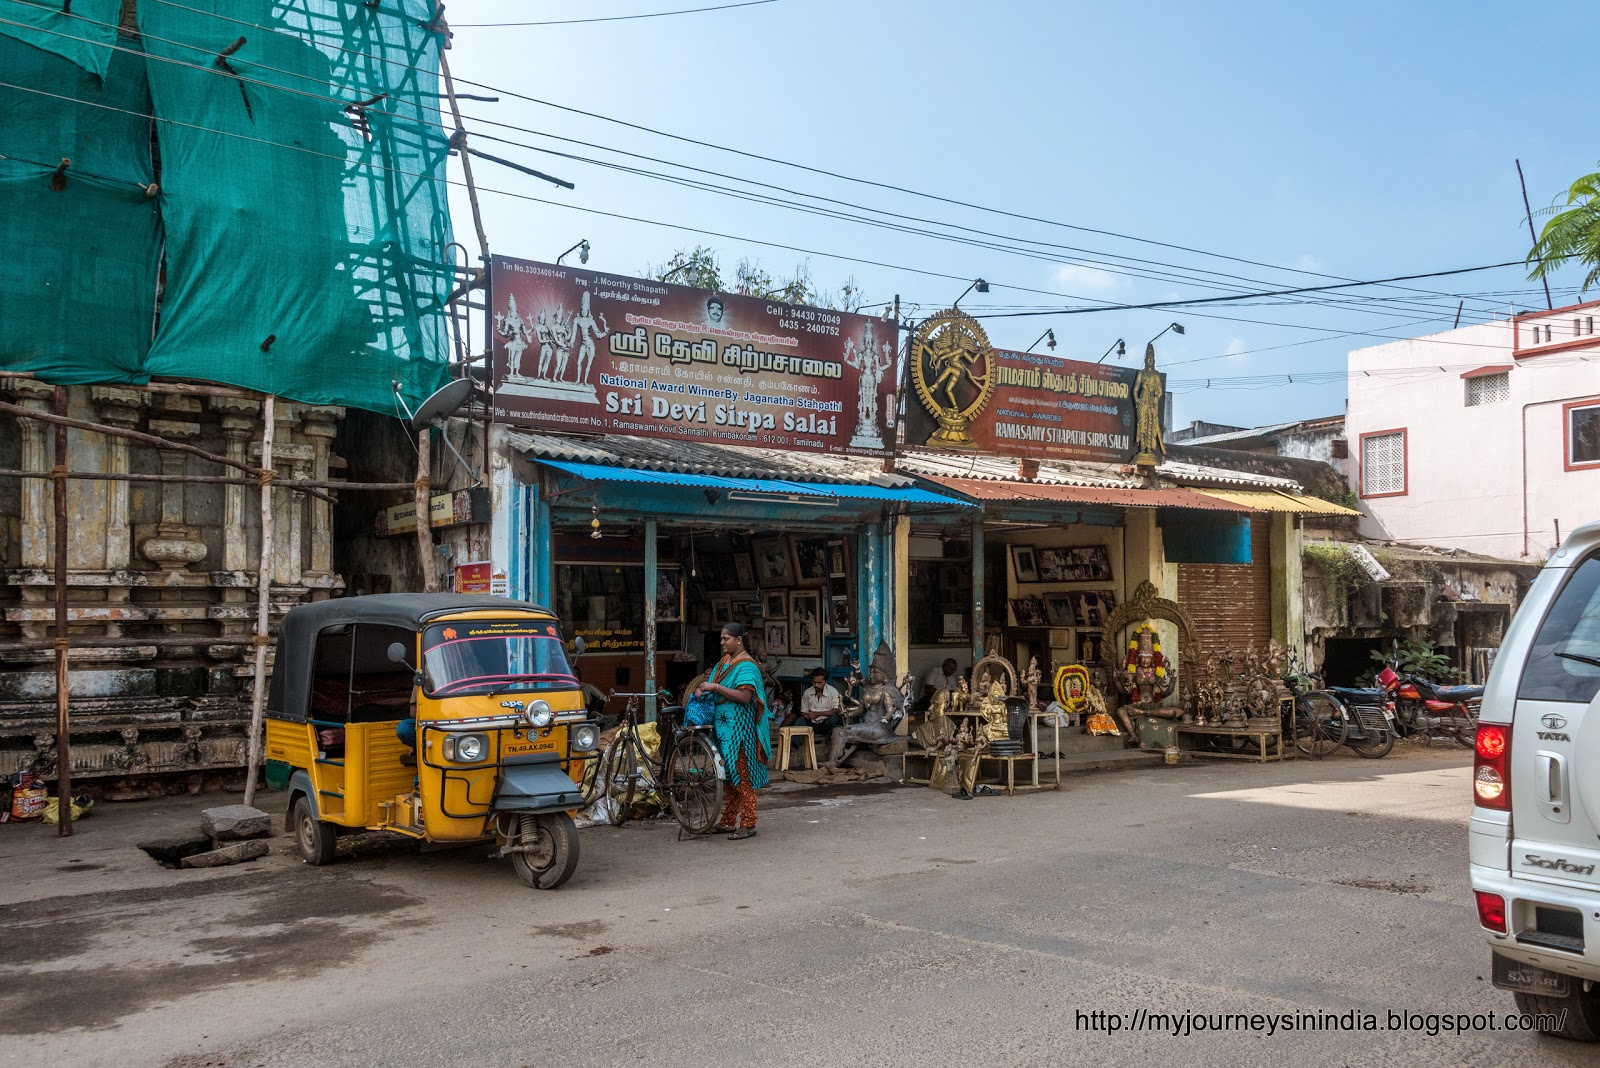 Kumbakonam Art and Craft shops near Ramaswamy Temple